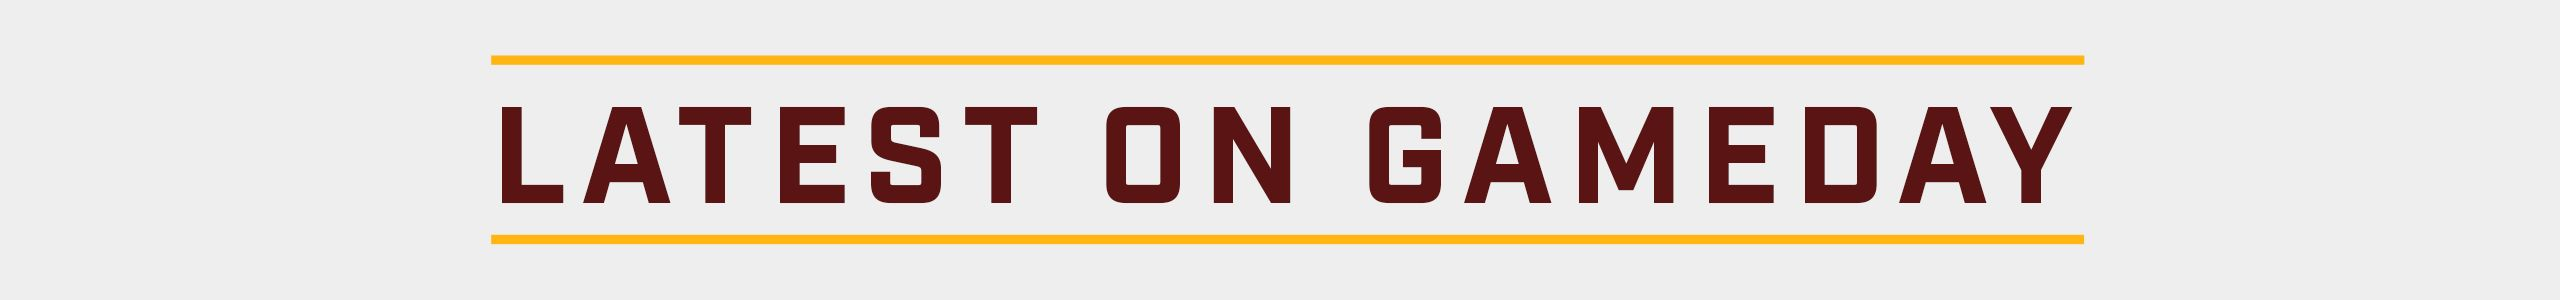 Latest_On_Gameday_SectionHeader